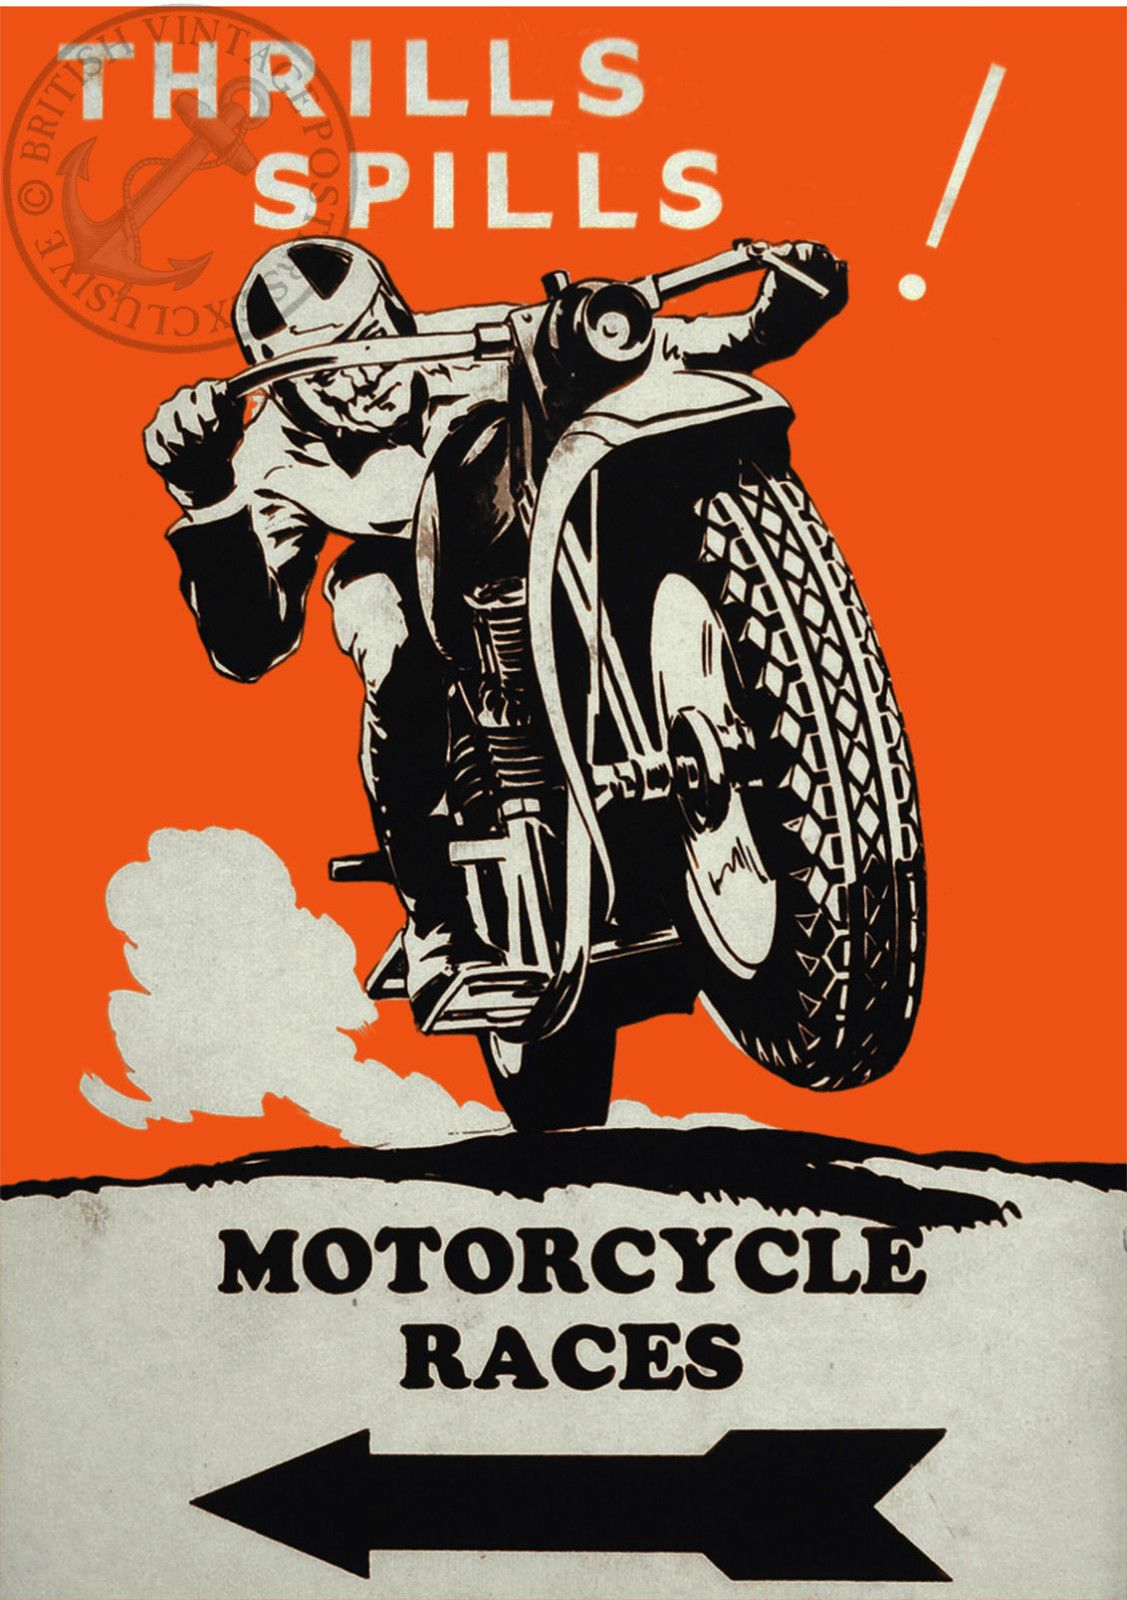 Details About Vintage Poster Motorcycle Racing Motorbike Ad Retro